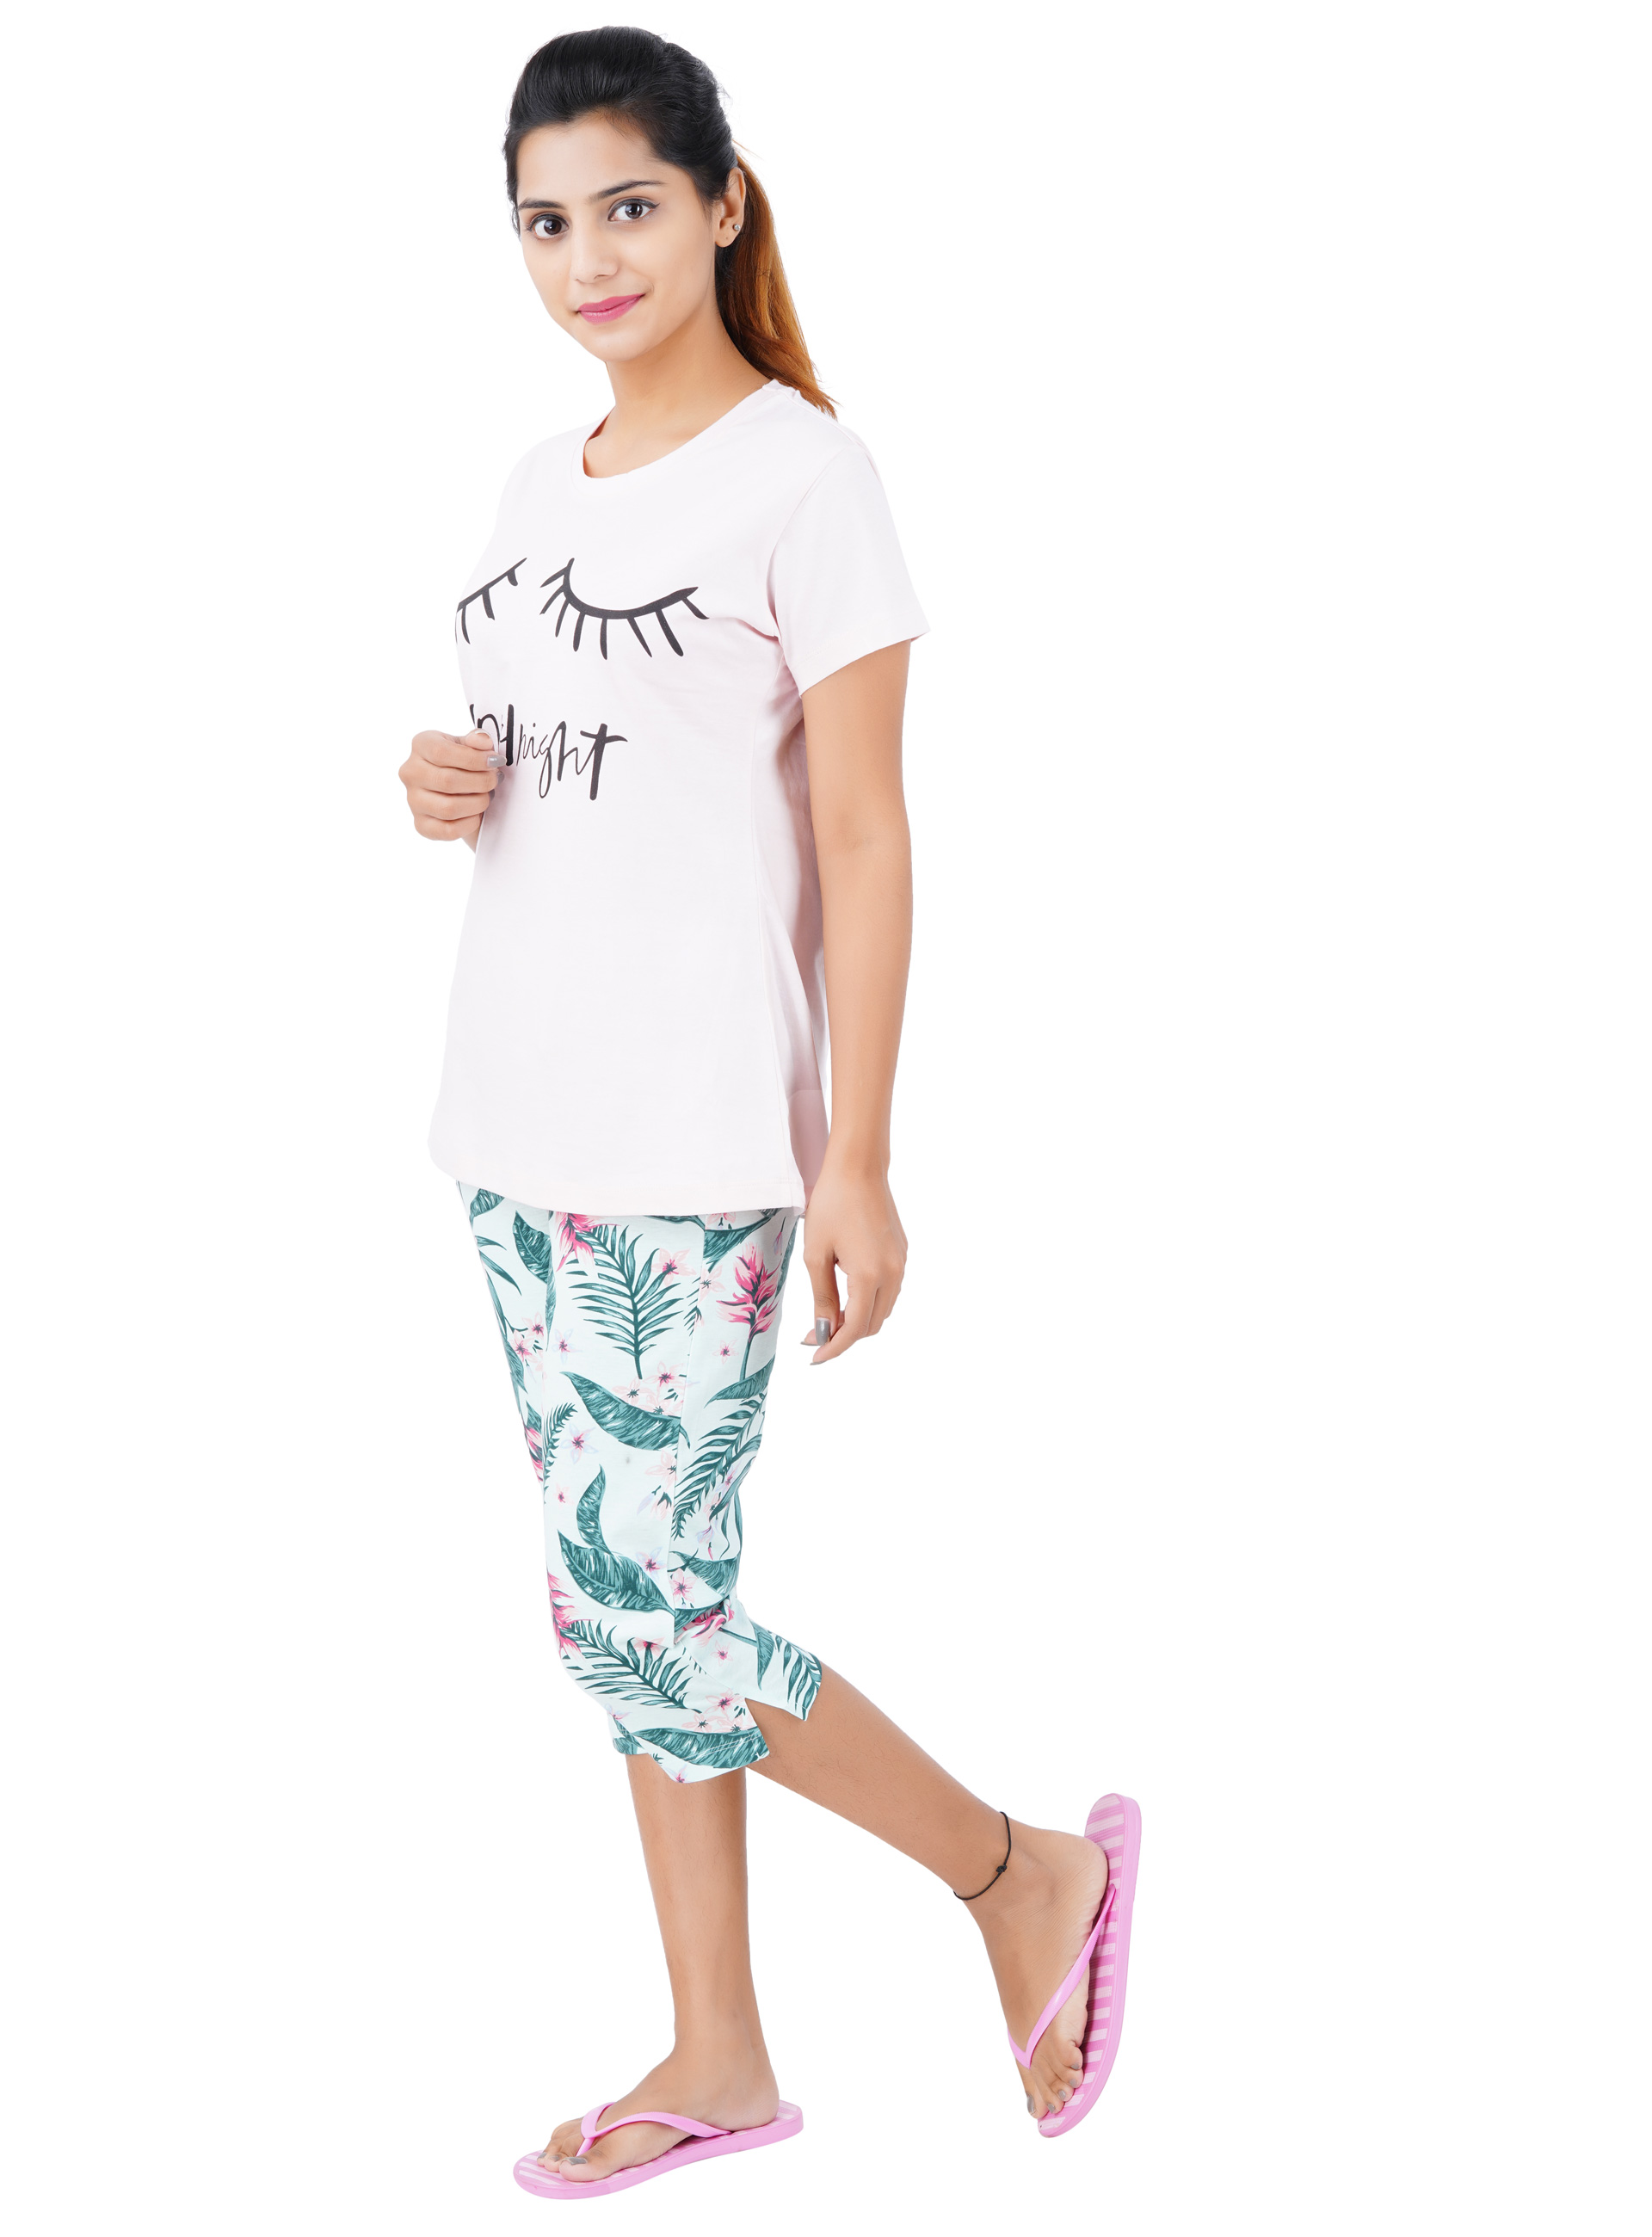 Aswati Pink 3/4 Full Set Capri - Good Night